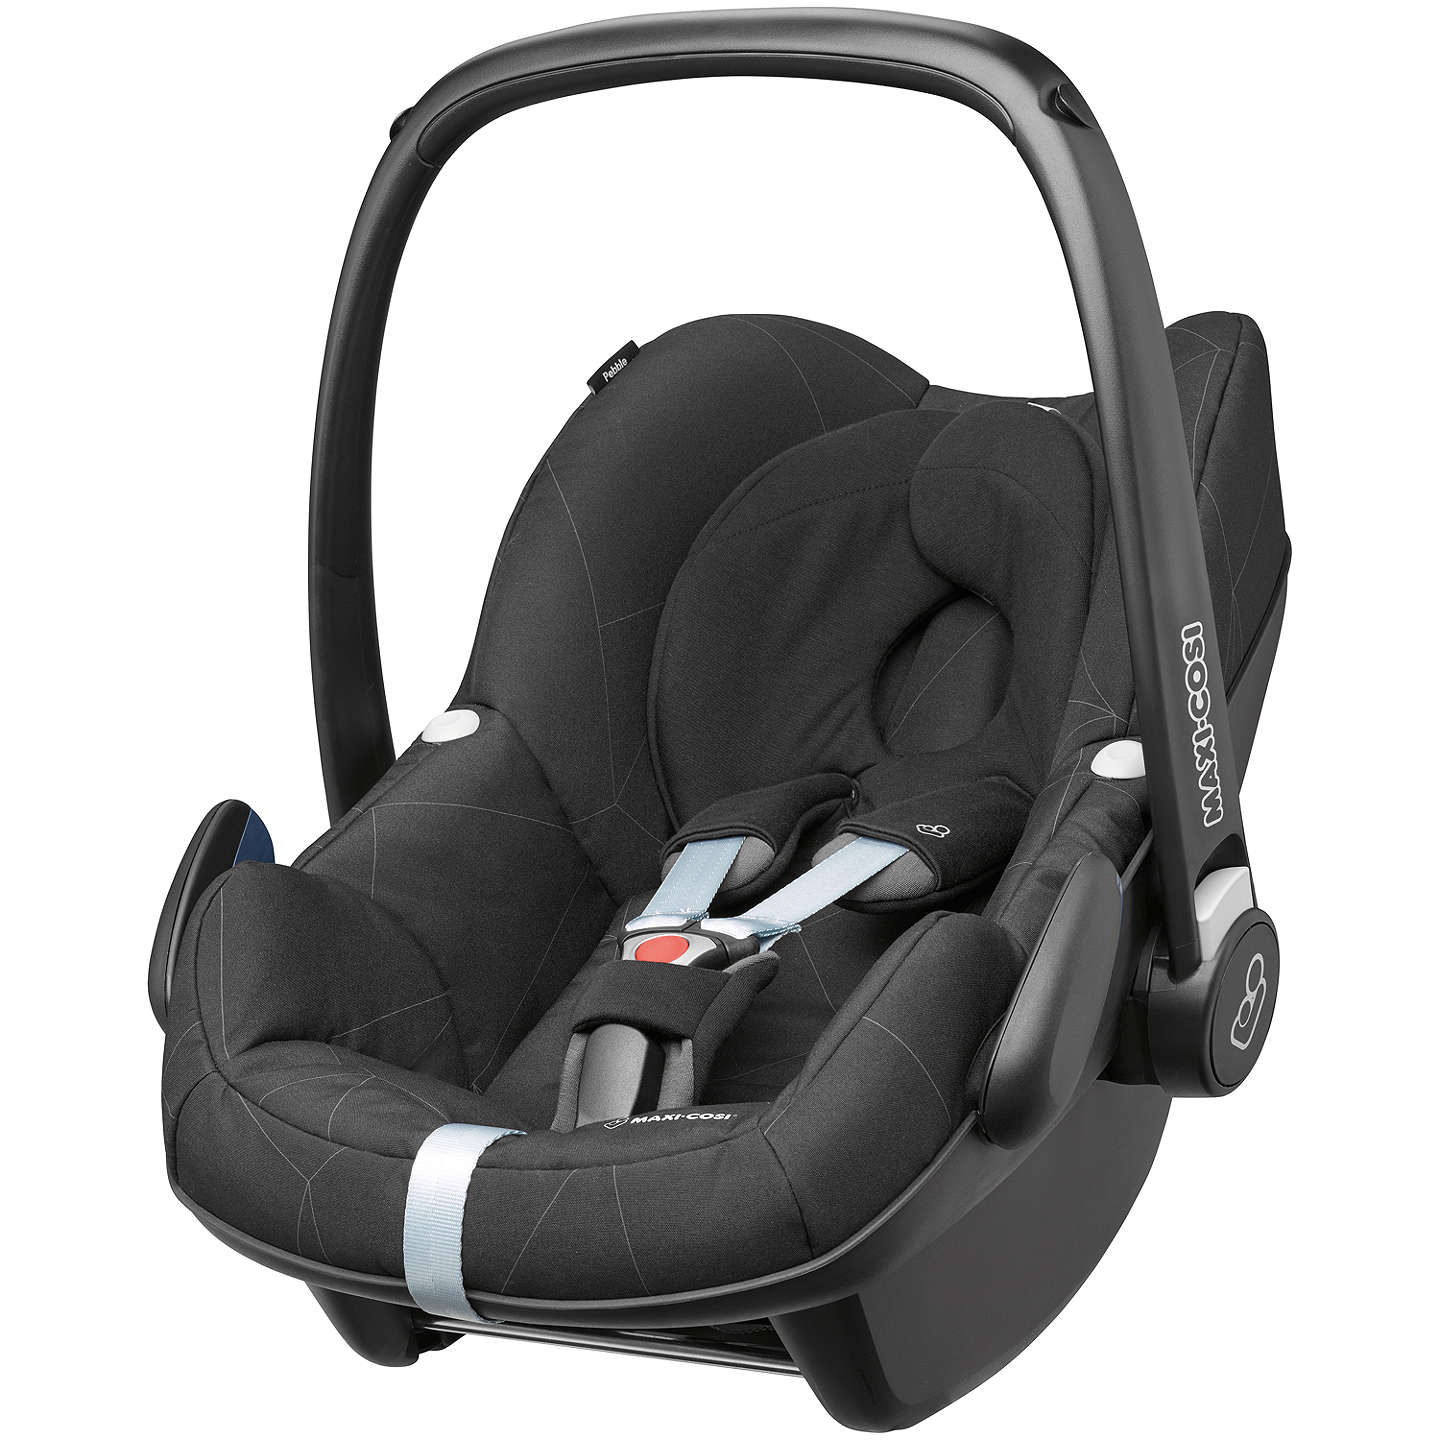 maxi cosi pebble group 0 baby car seat black diamond at john lewis. Black Bedroom Furniture Sets. Home Design Ideas